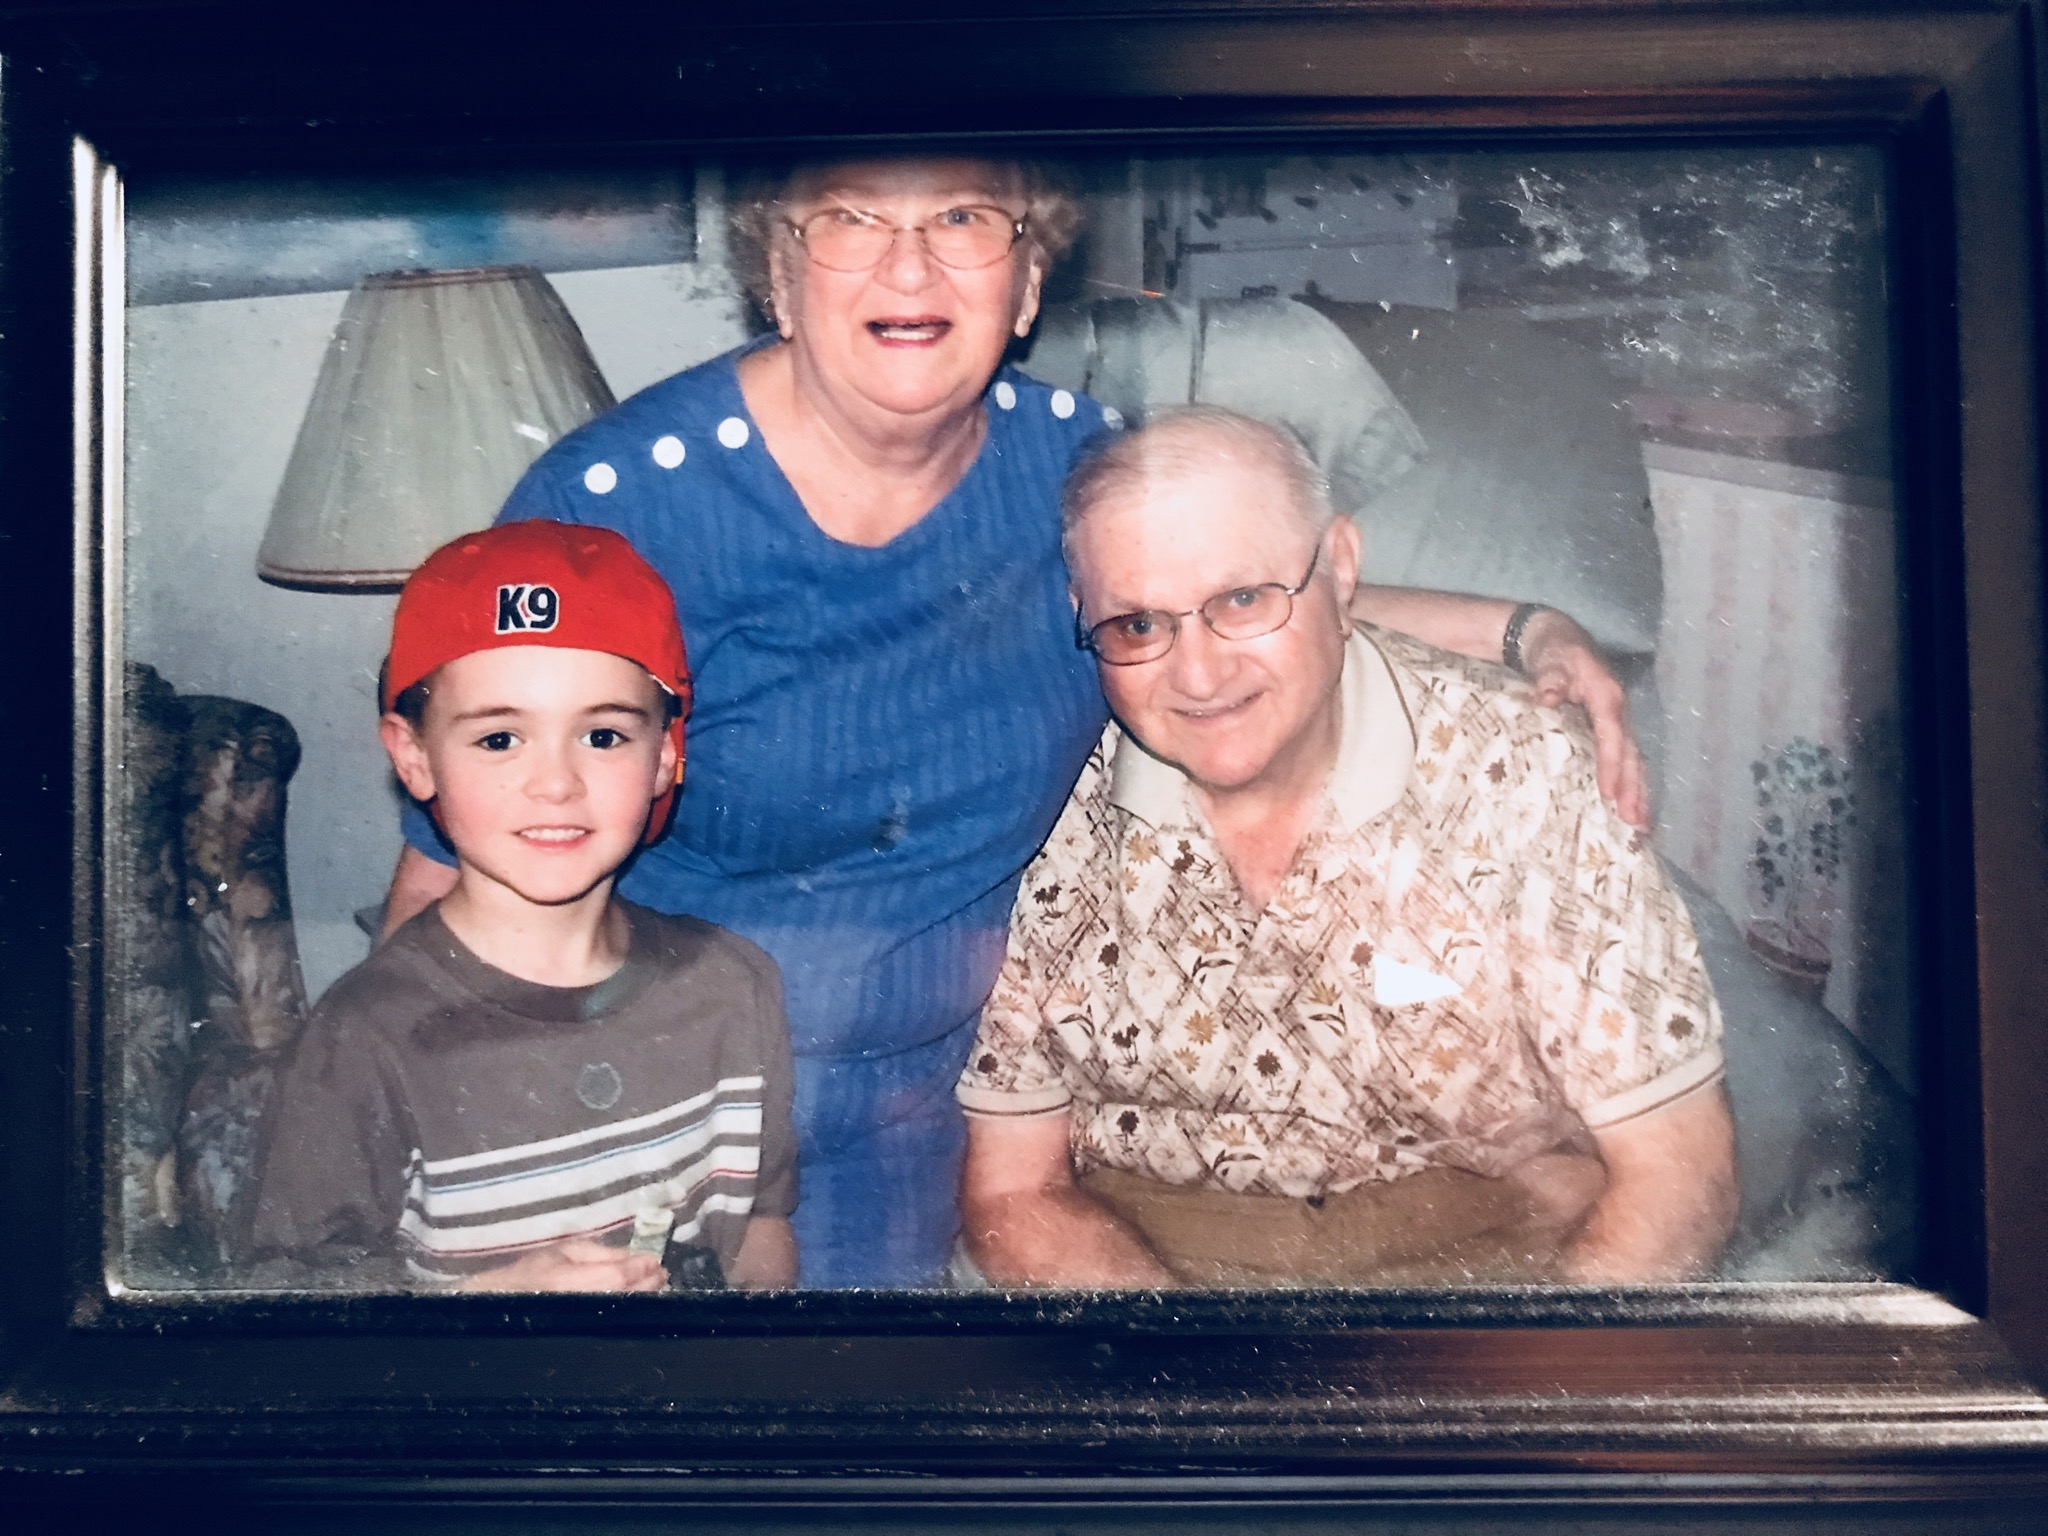 Braden, grandma and grandpa. He loves you so much. Watch over him